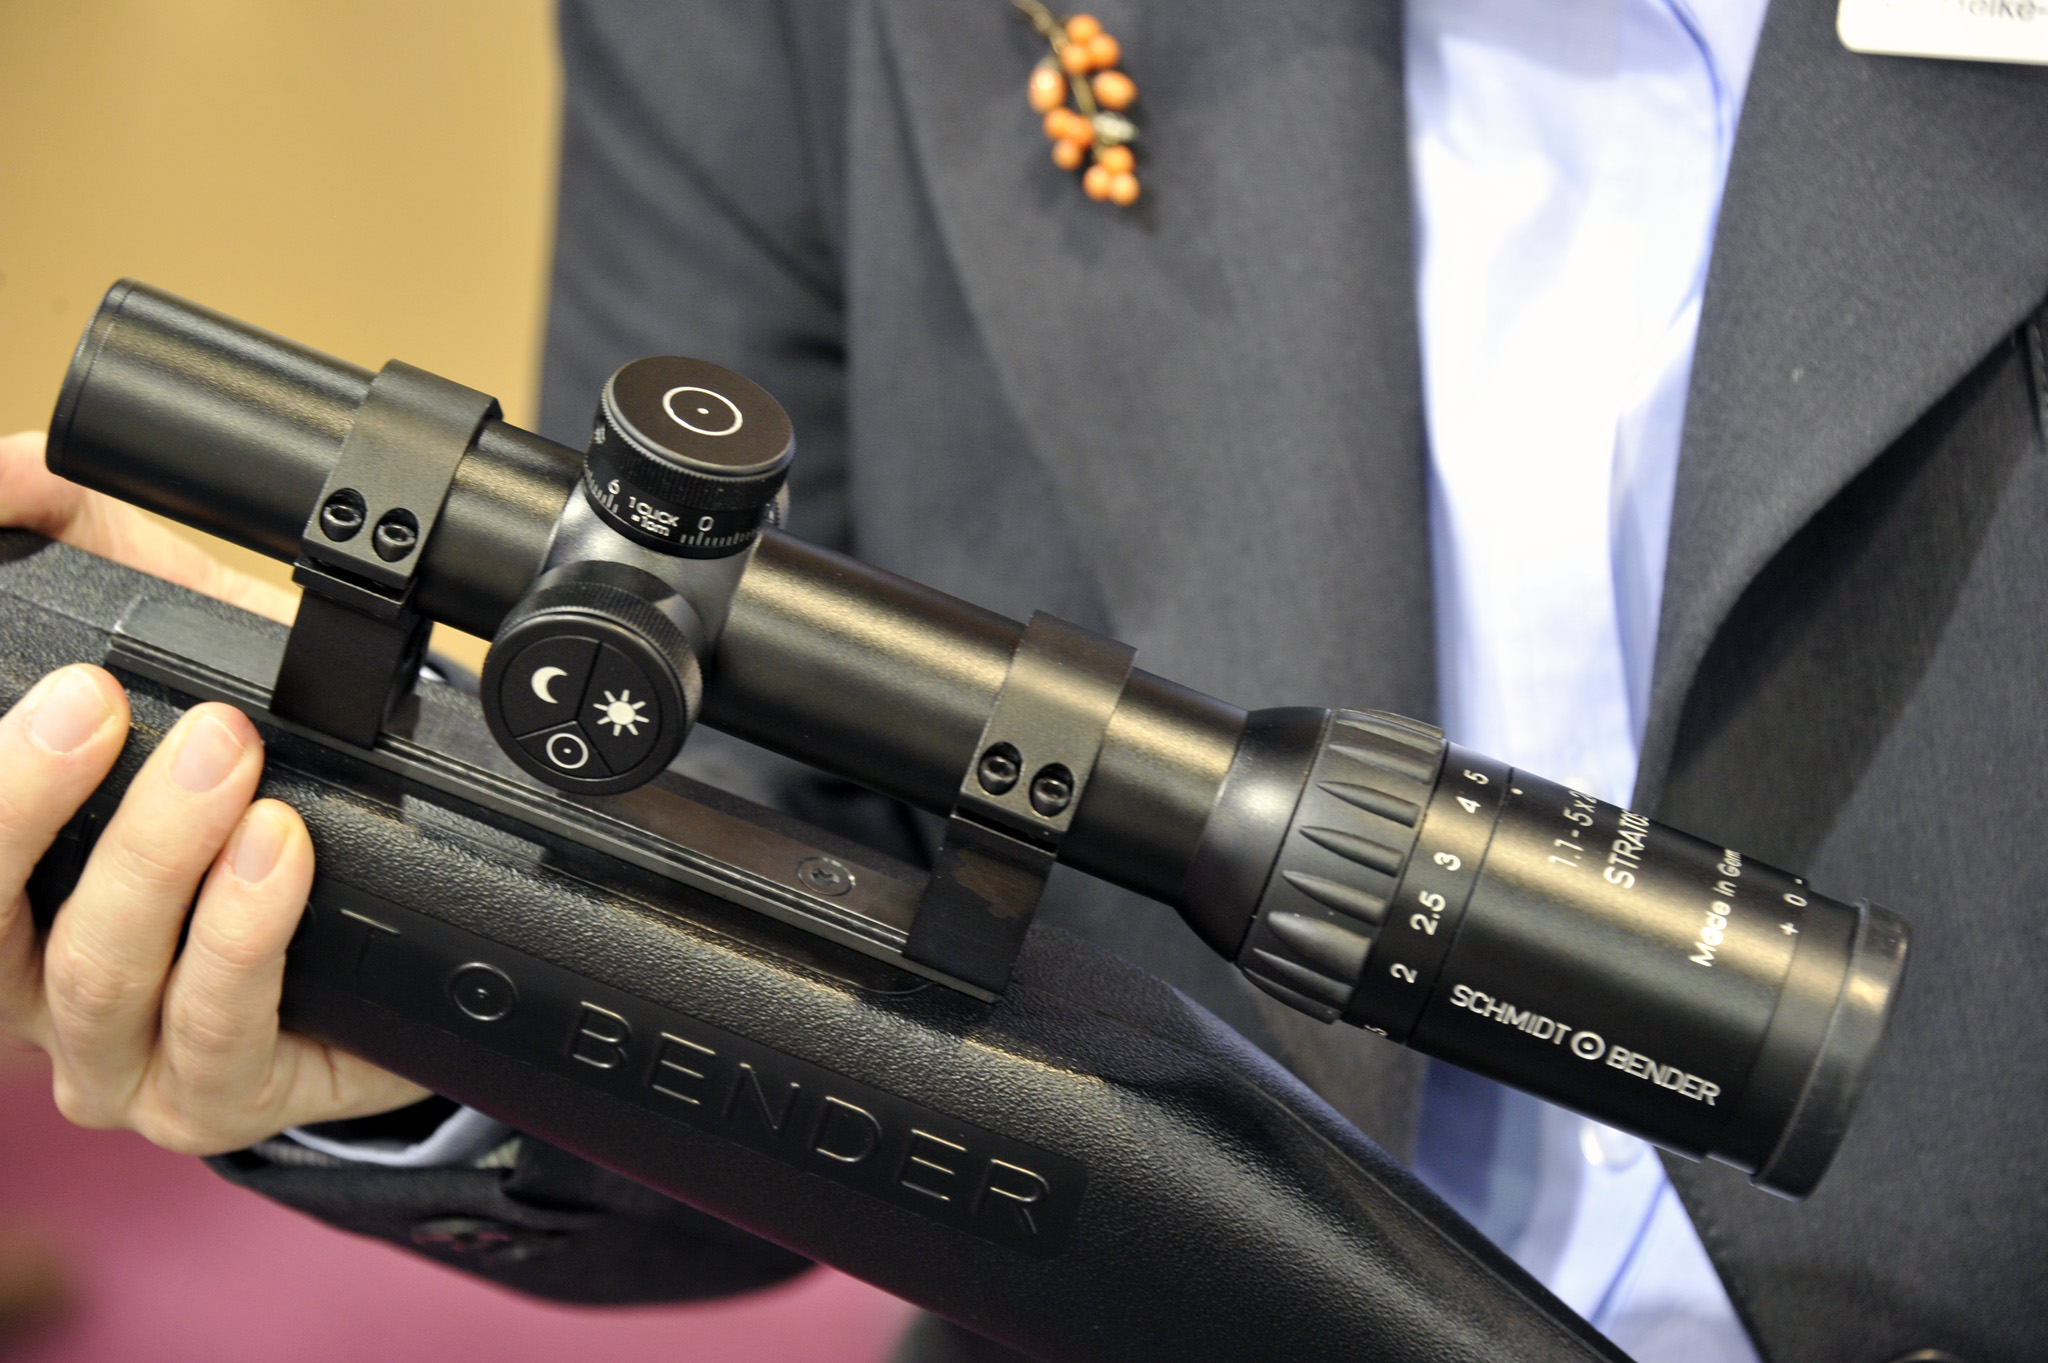 Schmidt & Bender Stratos 1,1-5x24 Battue riflescope. Note the new, removable and programmable Flash-Dot illumination unit on the left side of the scope